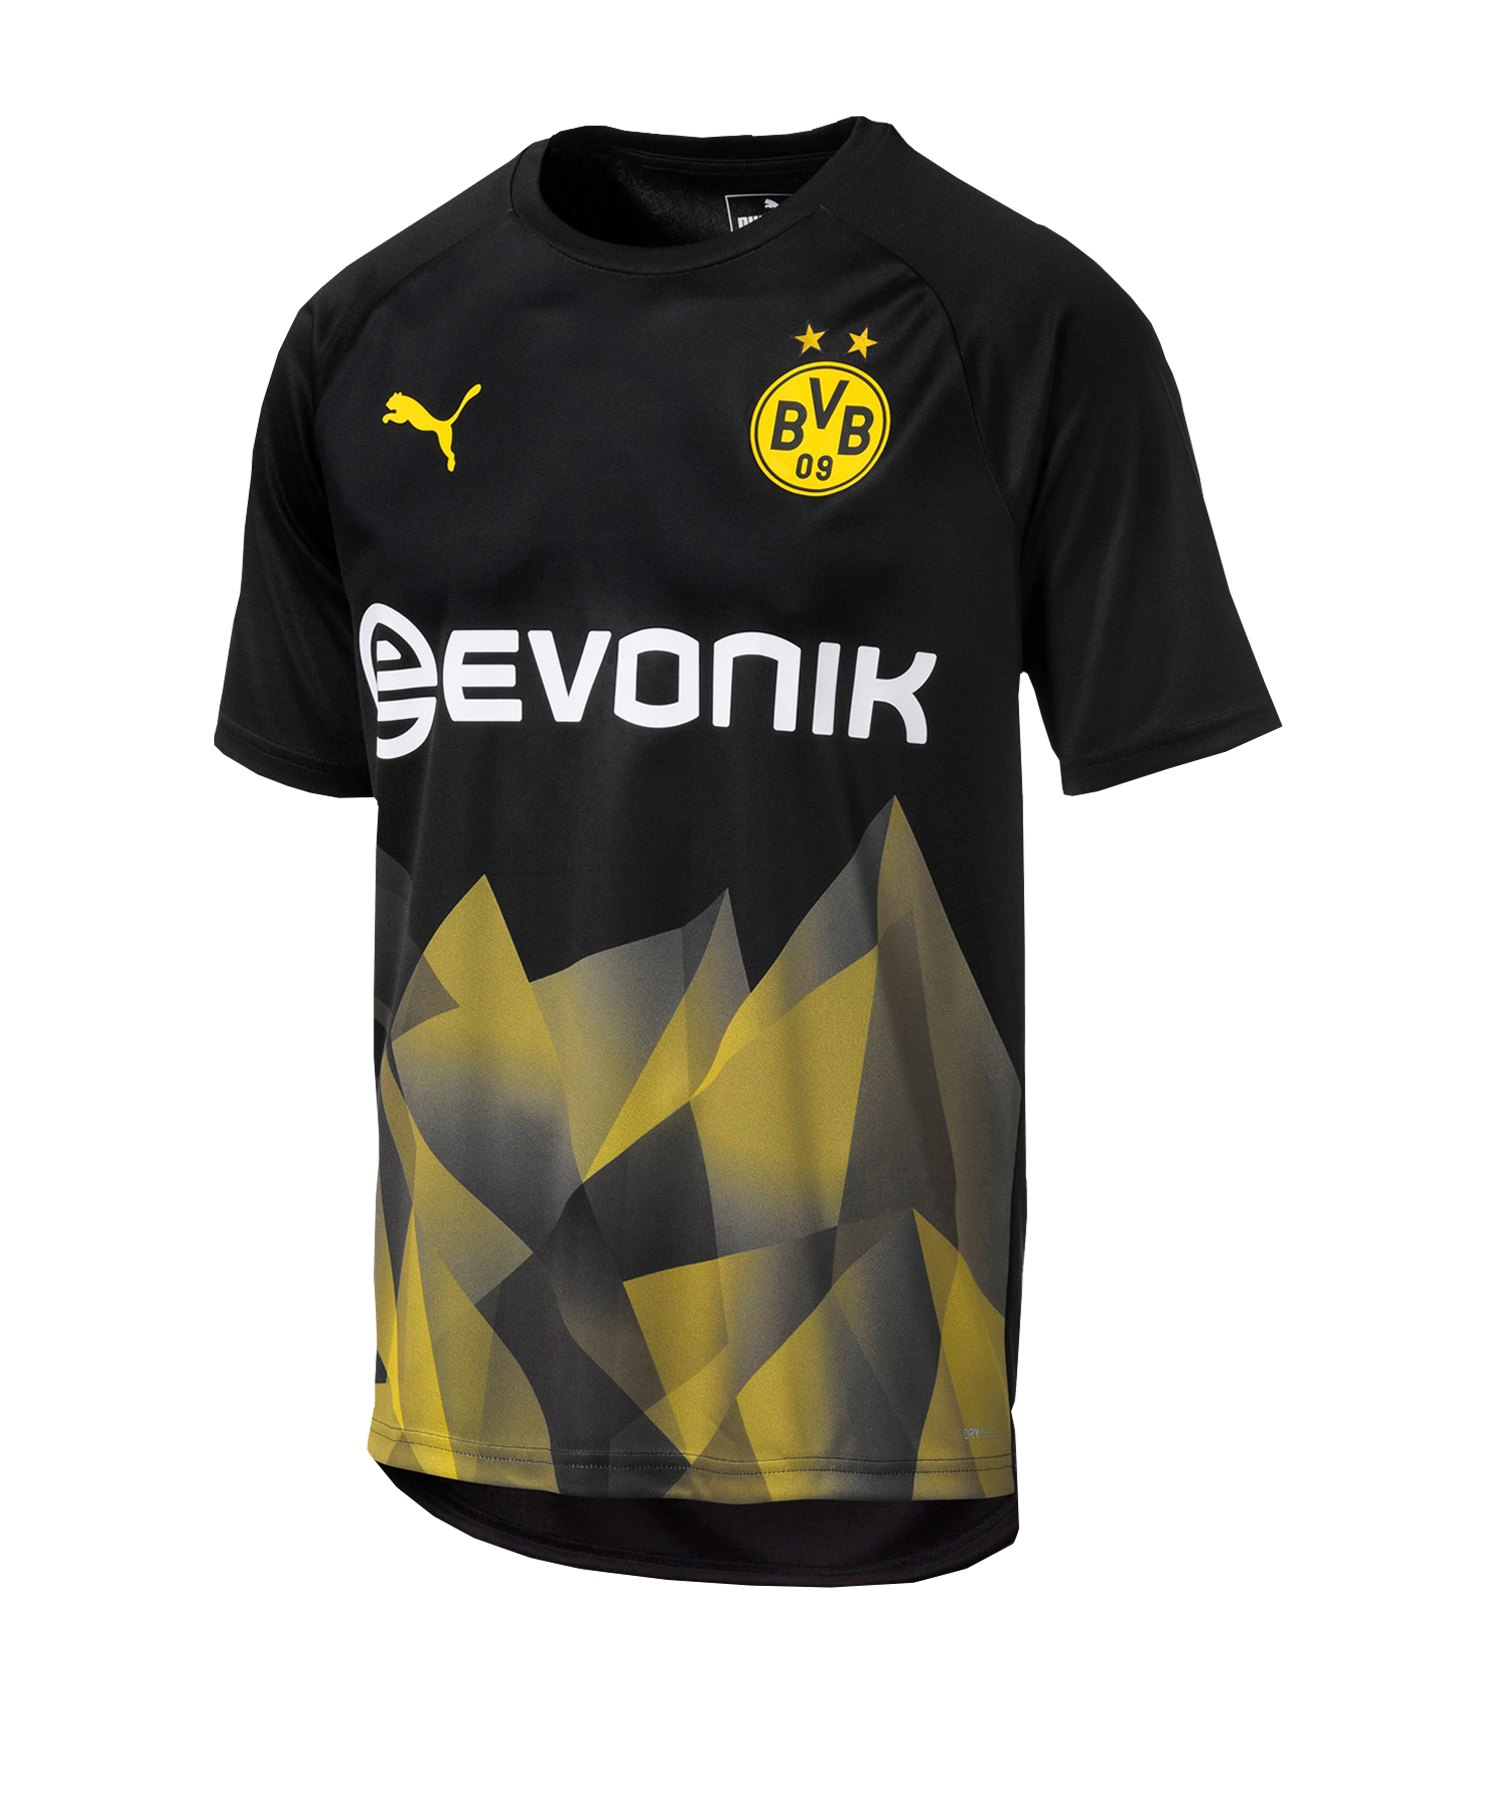 PUMA BVB Dortmund International T-Shirt F02 - Schwarz